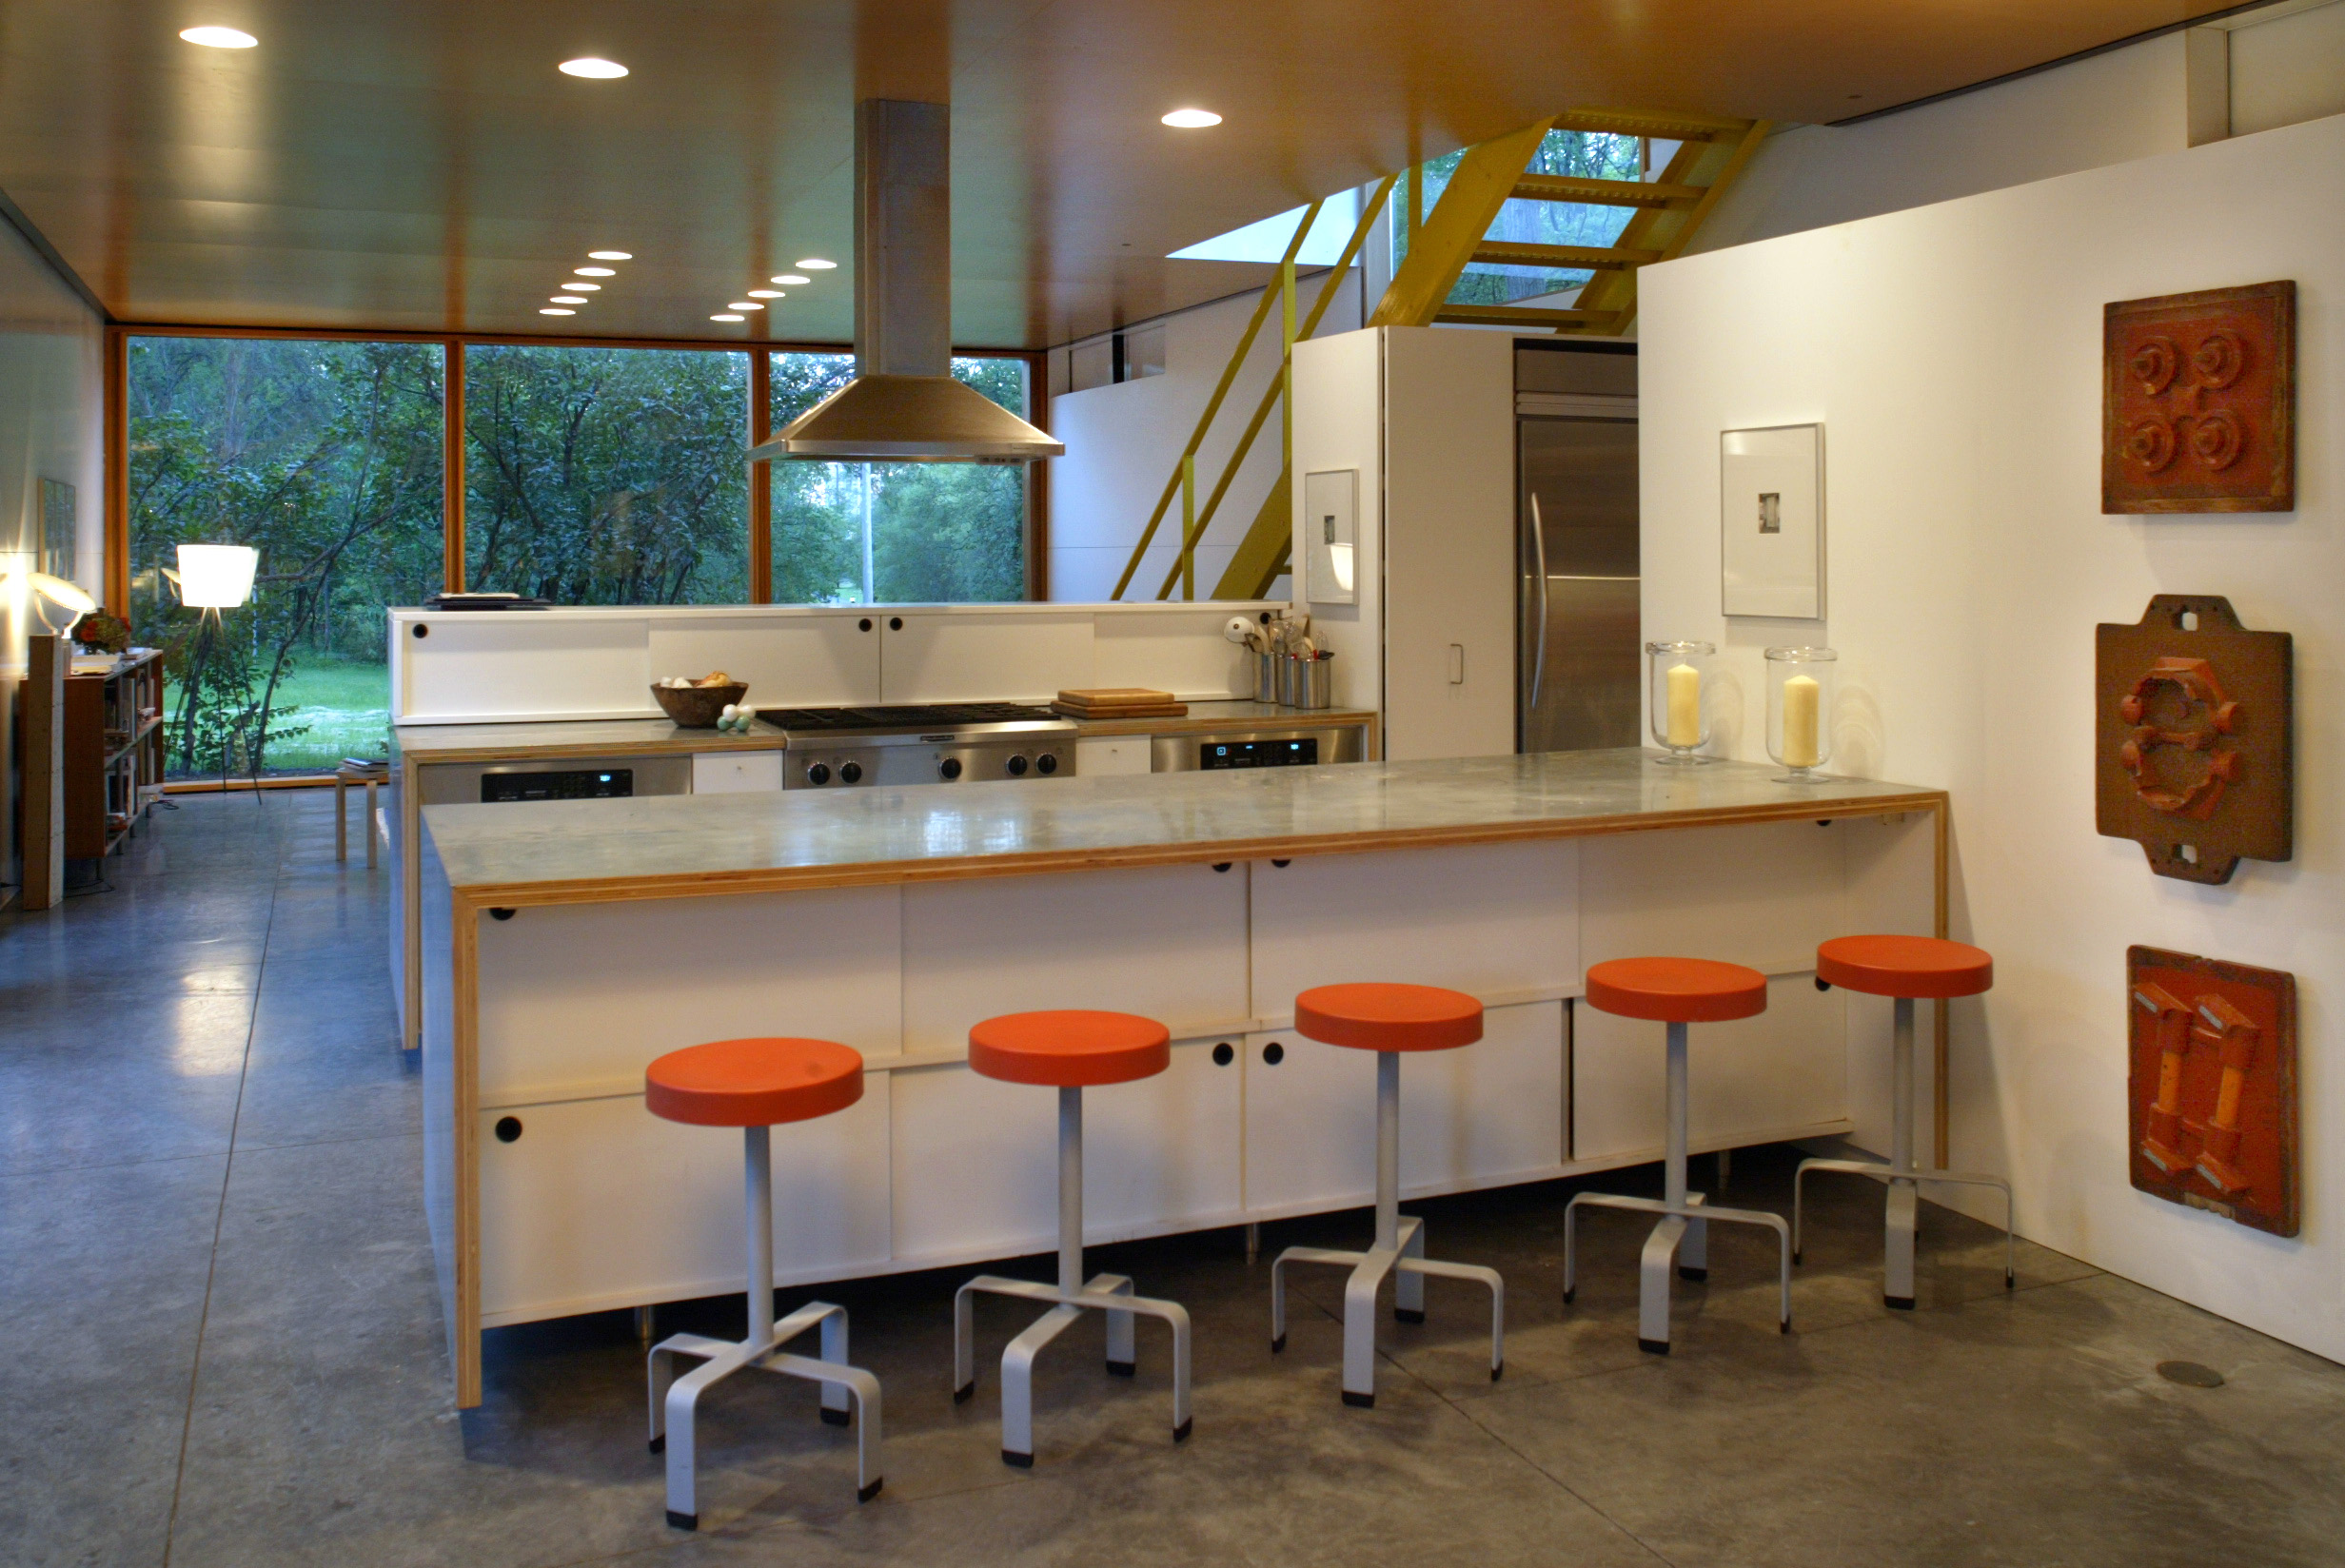 FP.Kitchen.JK 001.jpg